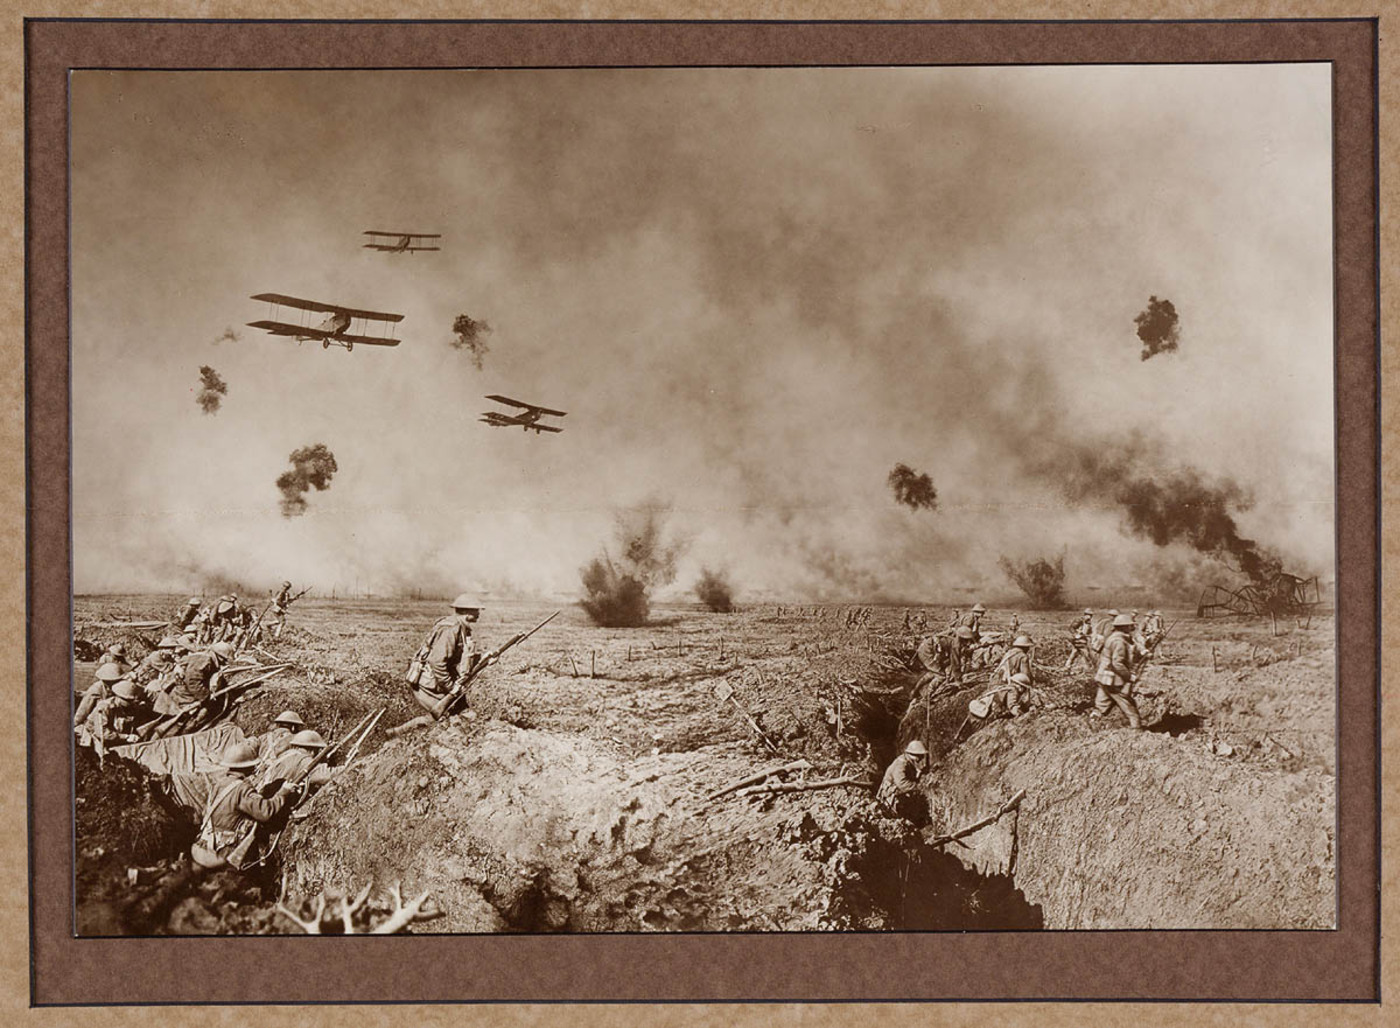 An episode after the Battle of Zonnebeke. Australian Infantry moving forward to resist a counter attack. On the-extreme right a machine brought down in flames is burning fiercely. Our advance is supported by bombing planes...